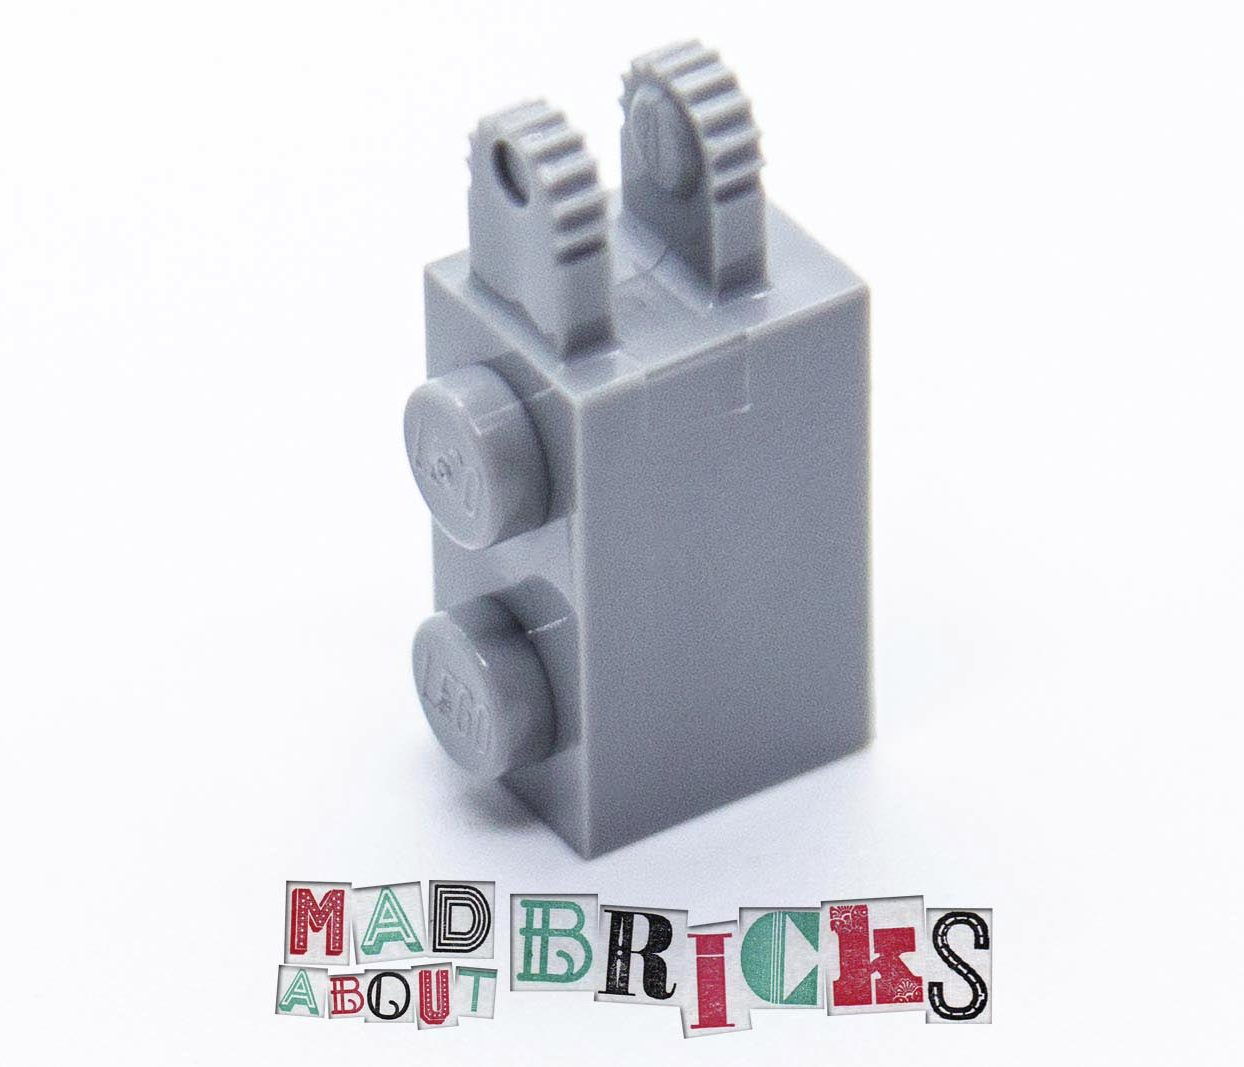 Lego 30540 1x2 Birkc with Friction Fork Horizontal end 4211678